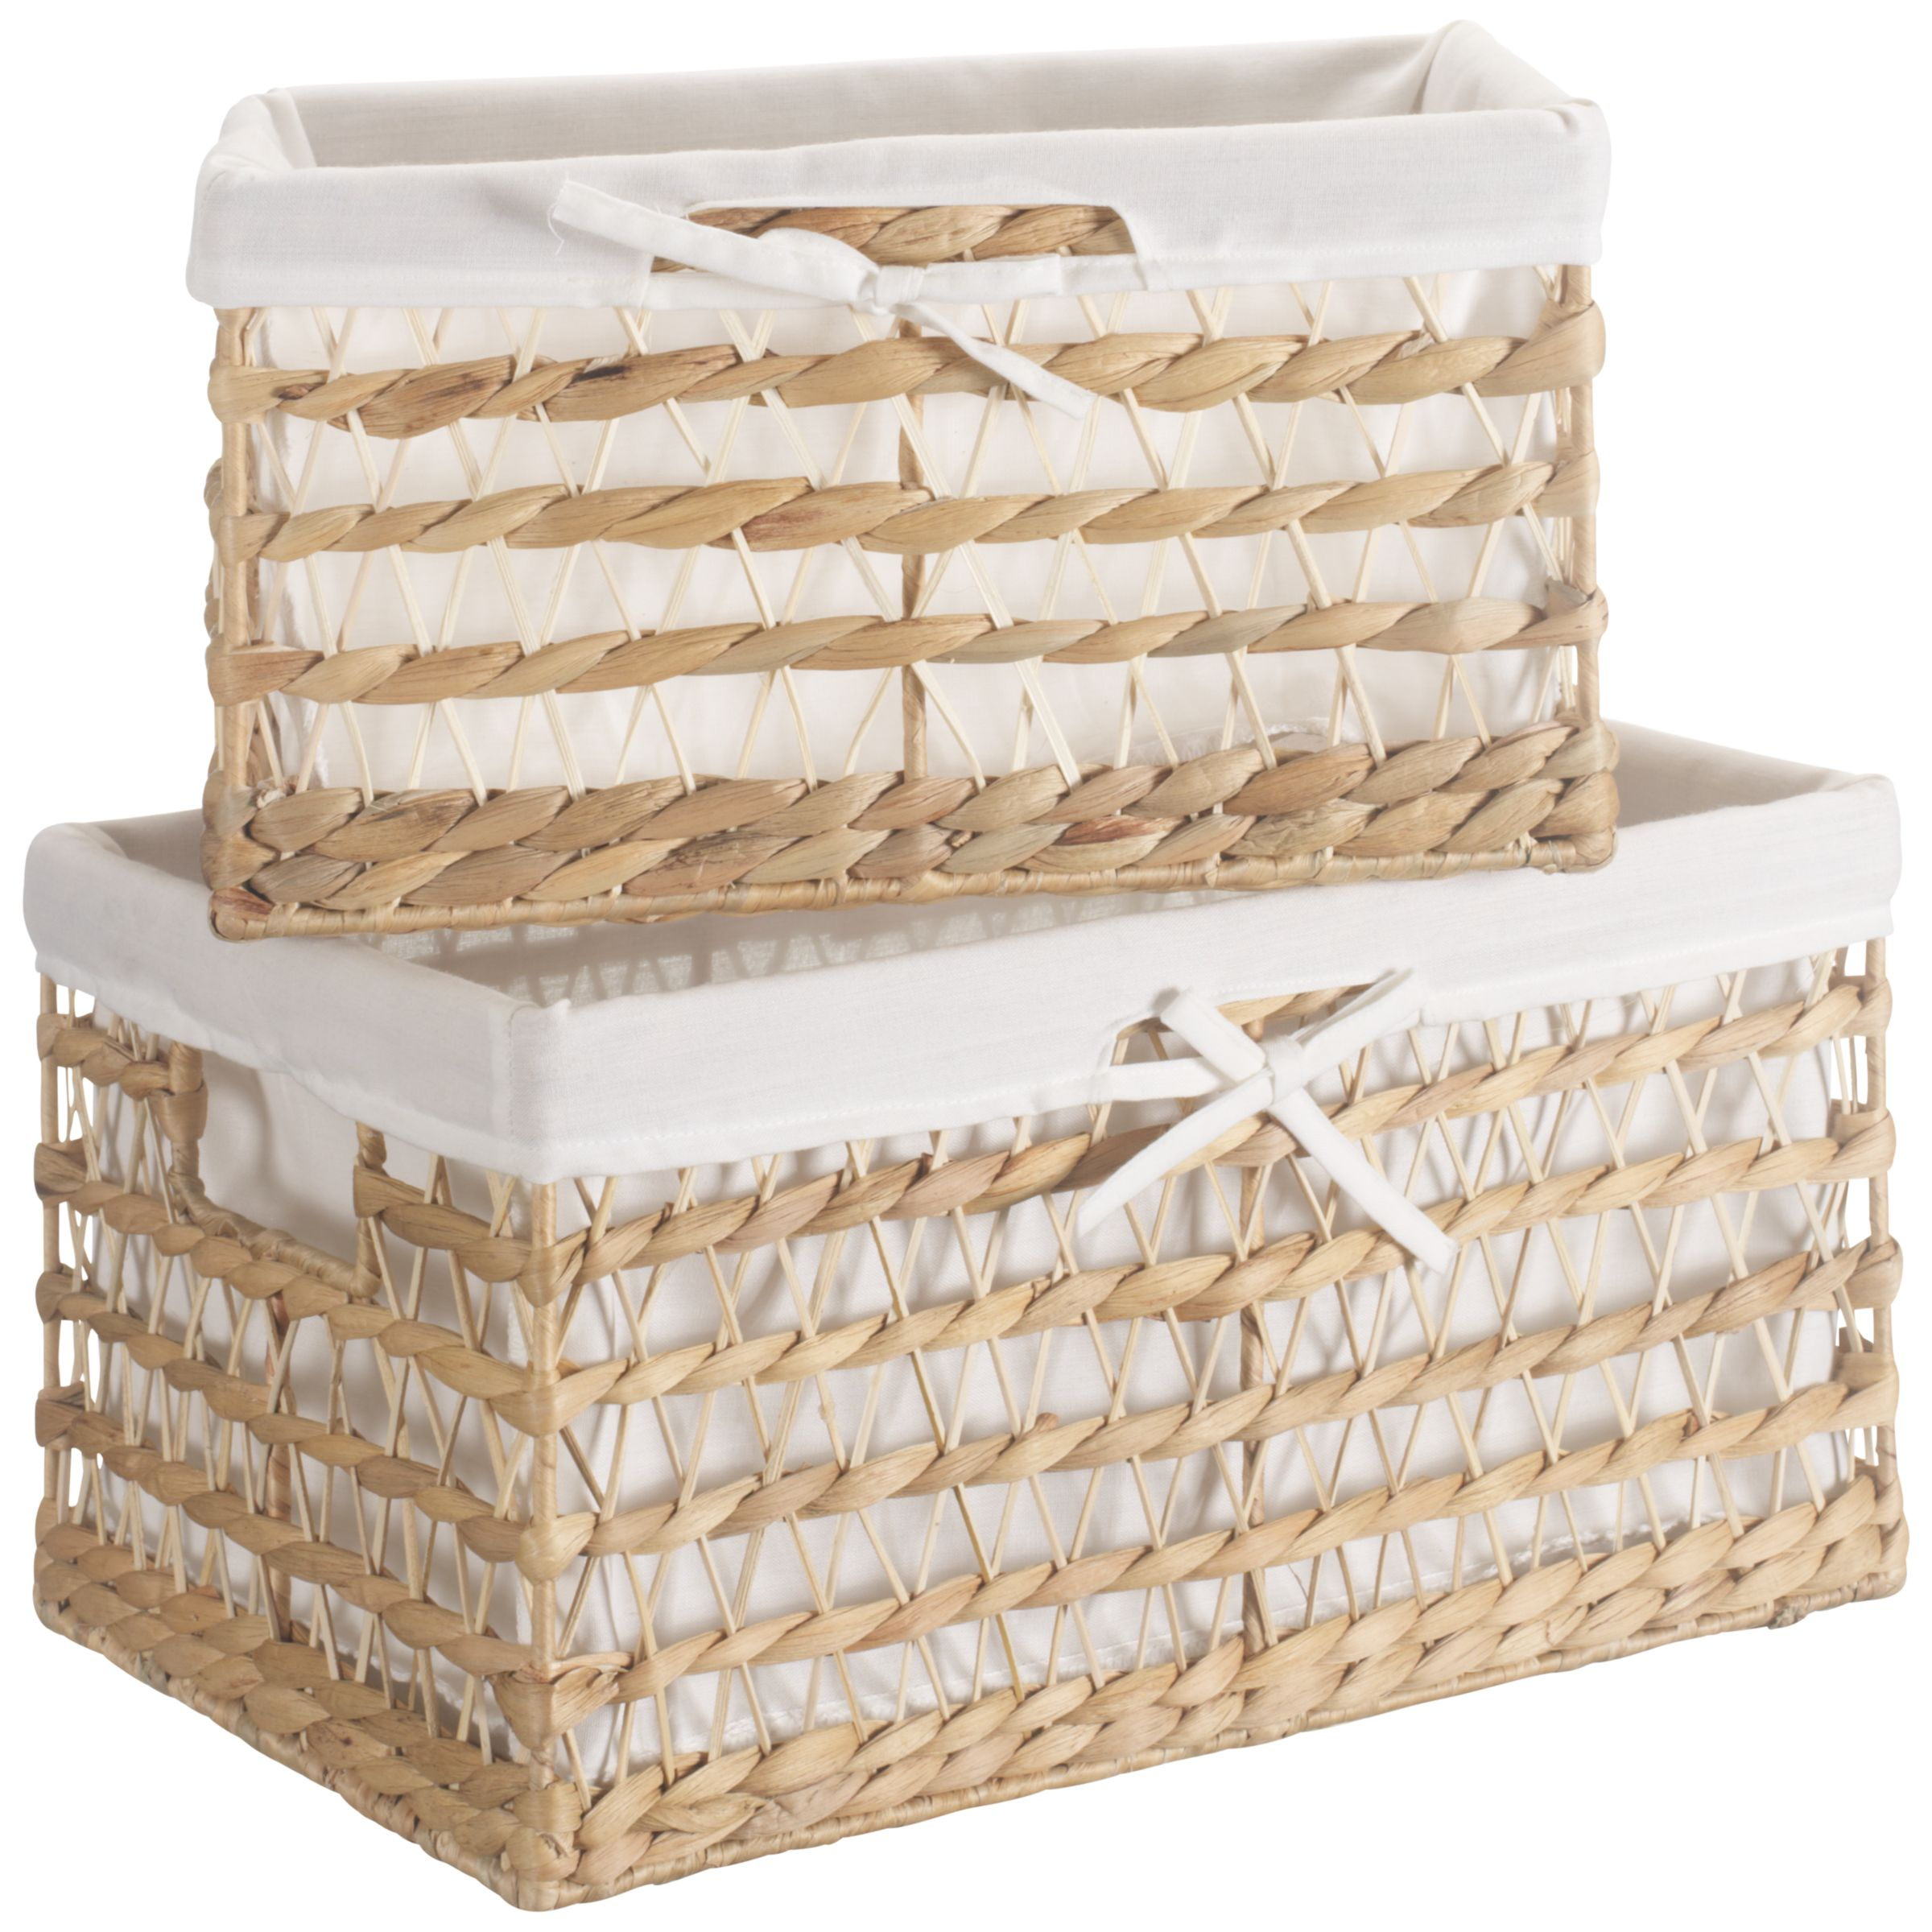 John Lewis Water Hyacinth Storage Baskets